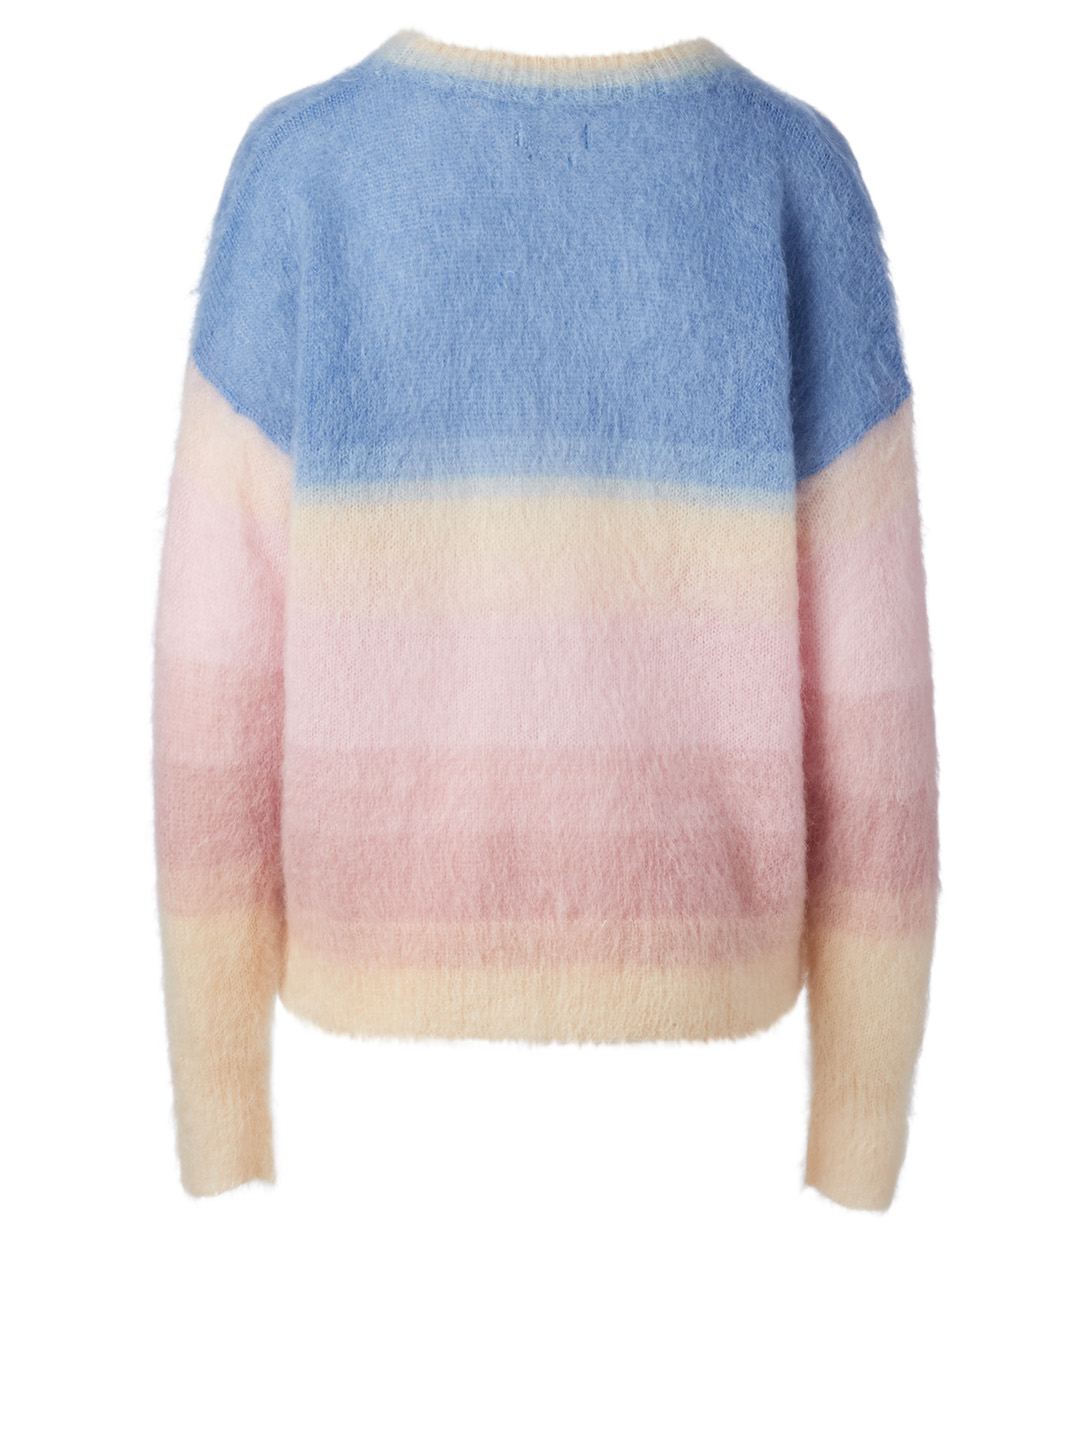 ISABEL MARANT ÉTOILE Drussell Mohair And Wool Sweater Women's Blue